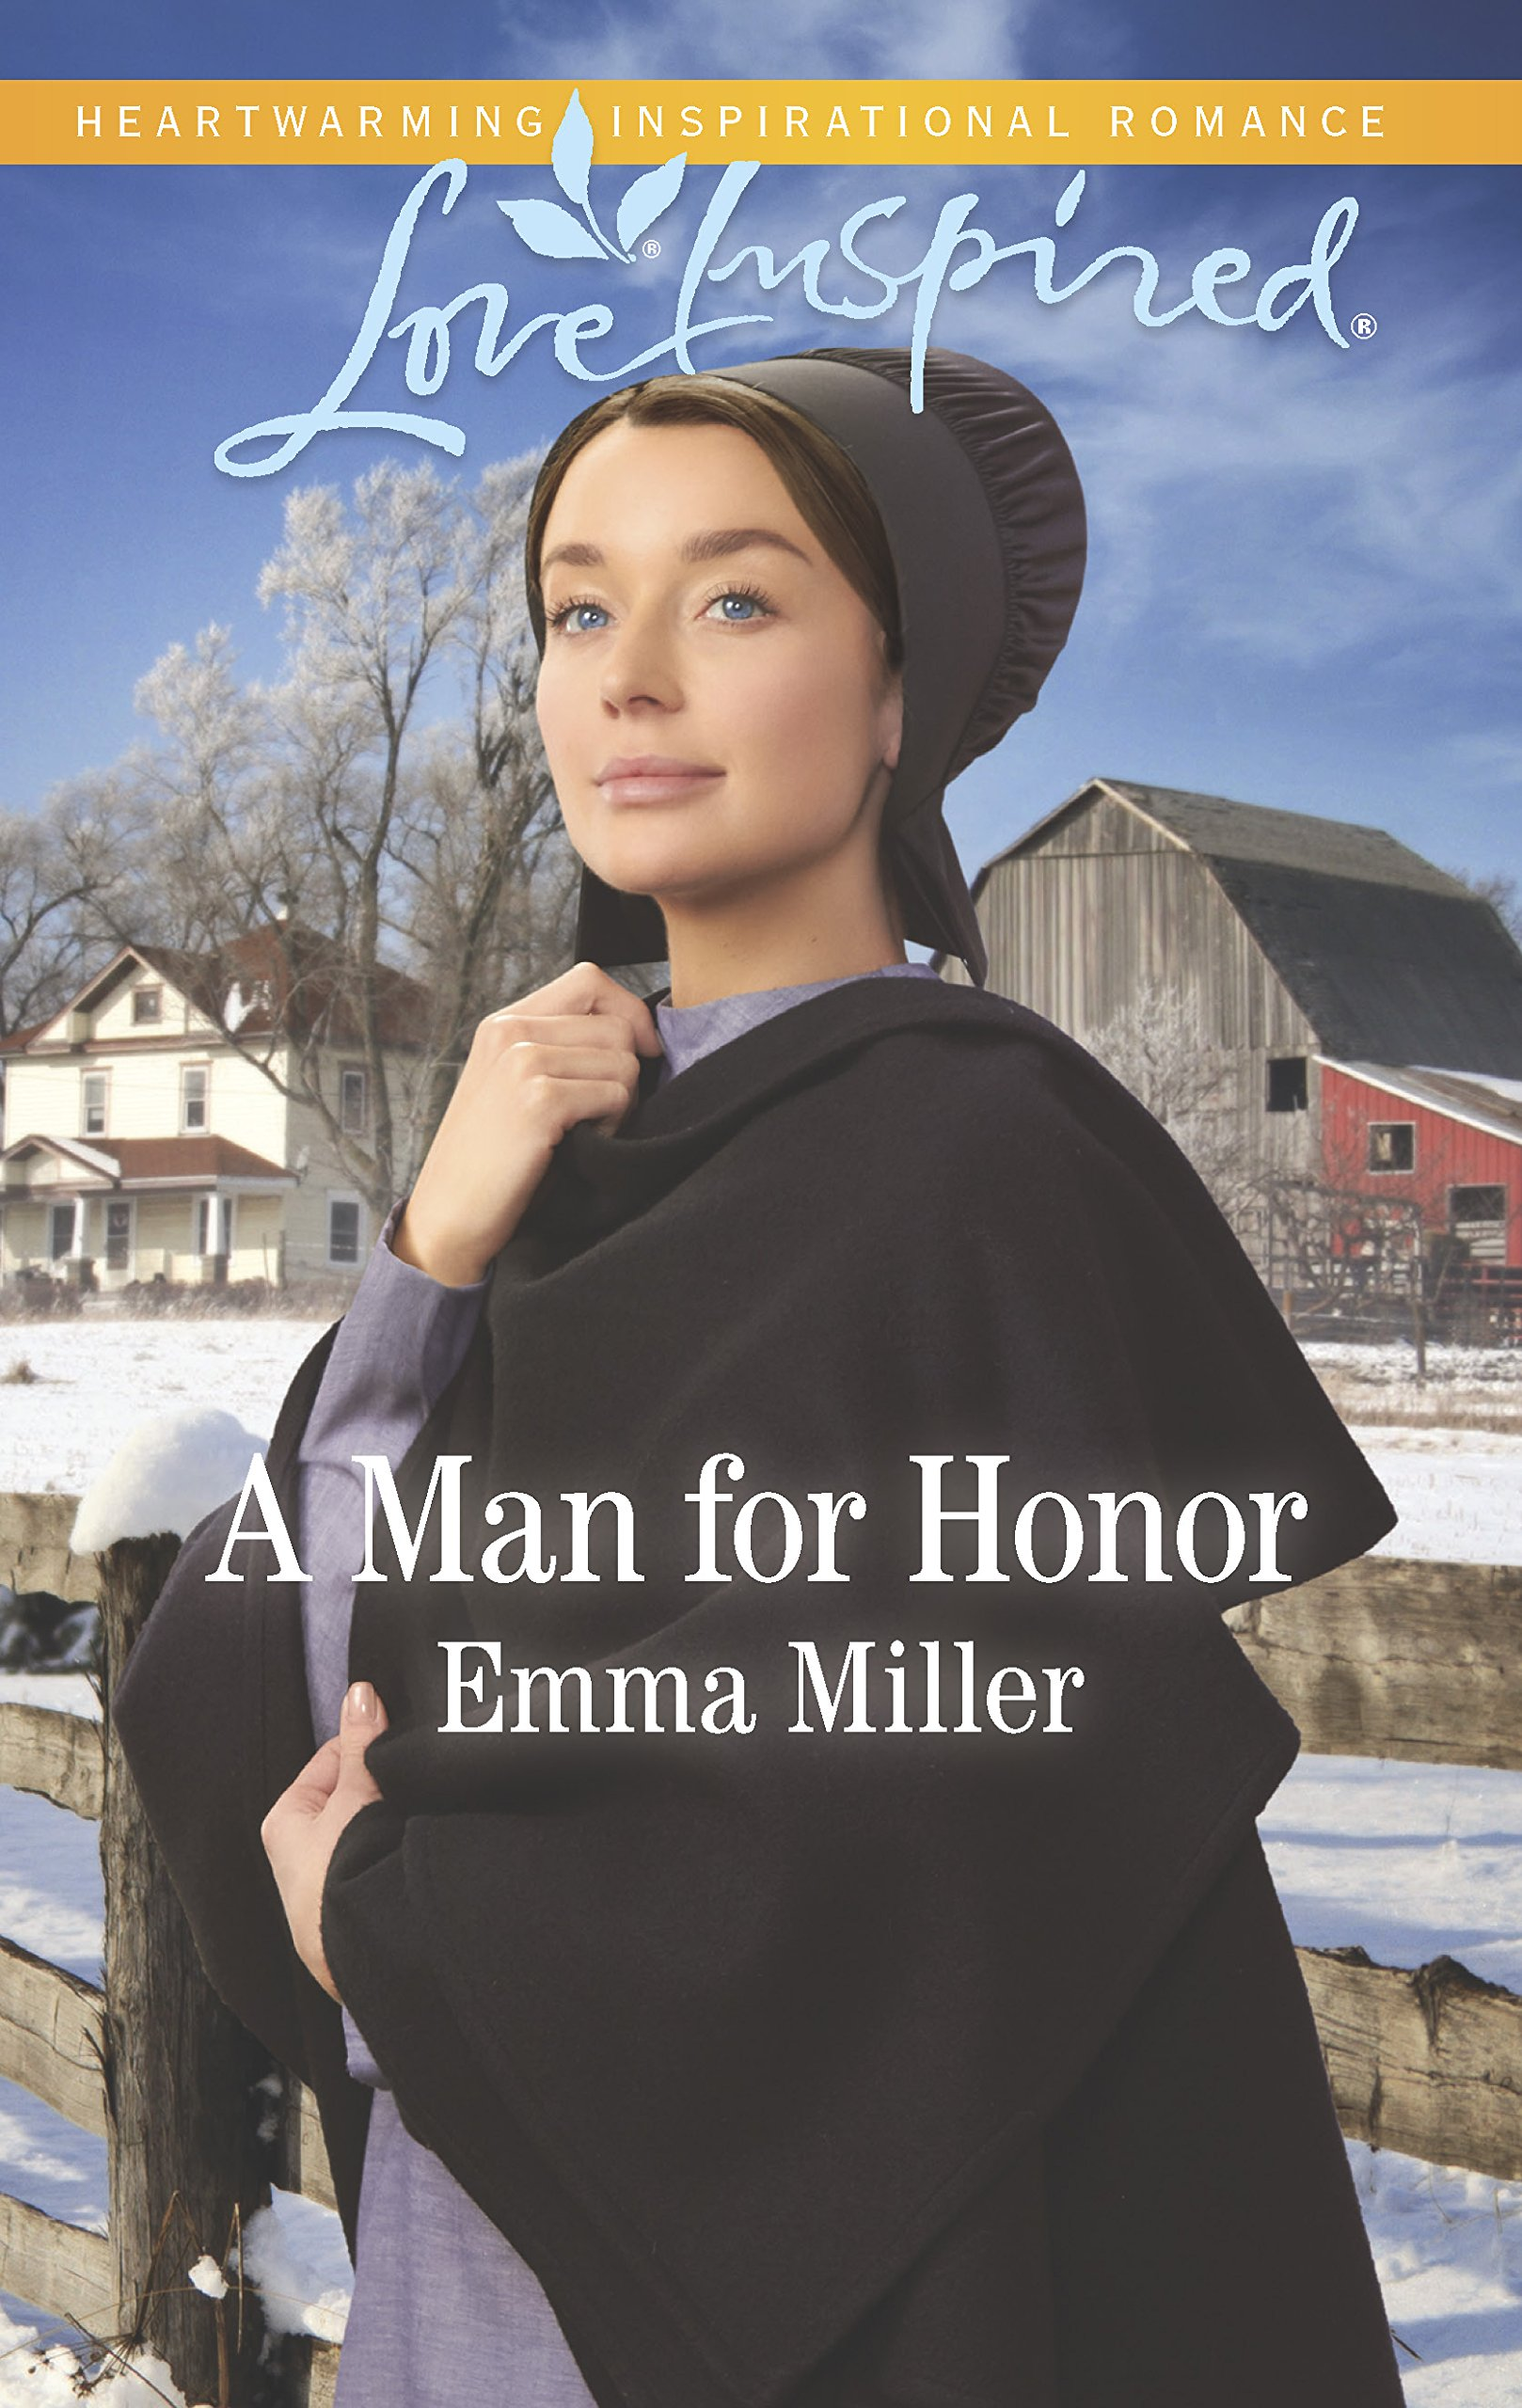 A Man for Honor (The Amish Matchmaker): Emma Miller: 9781335509284:  Amazon.com: Books